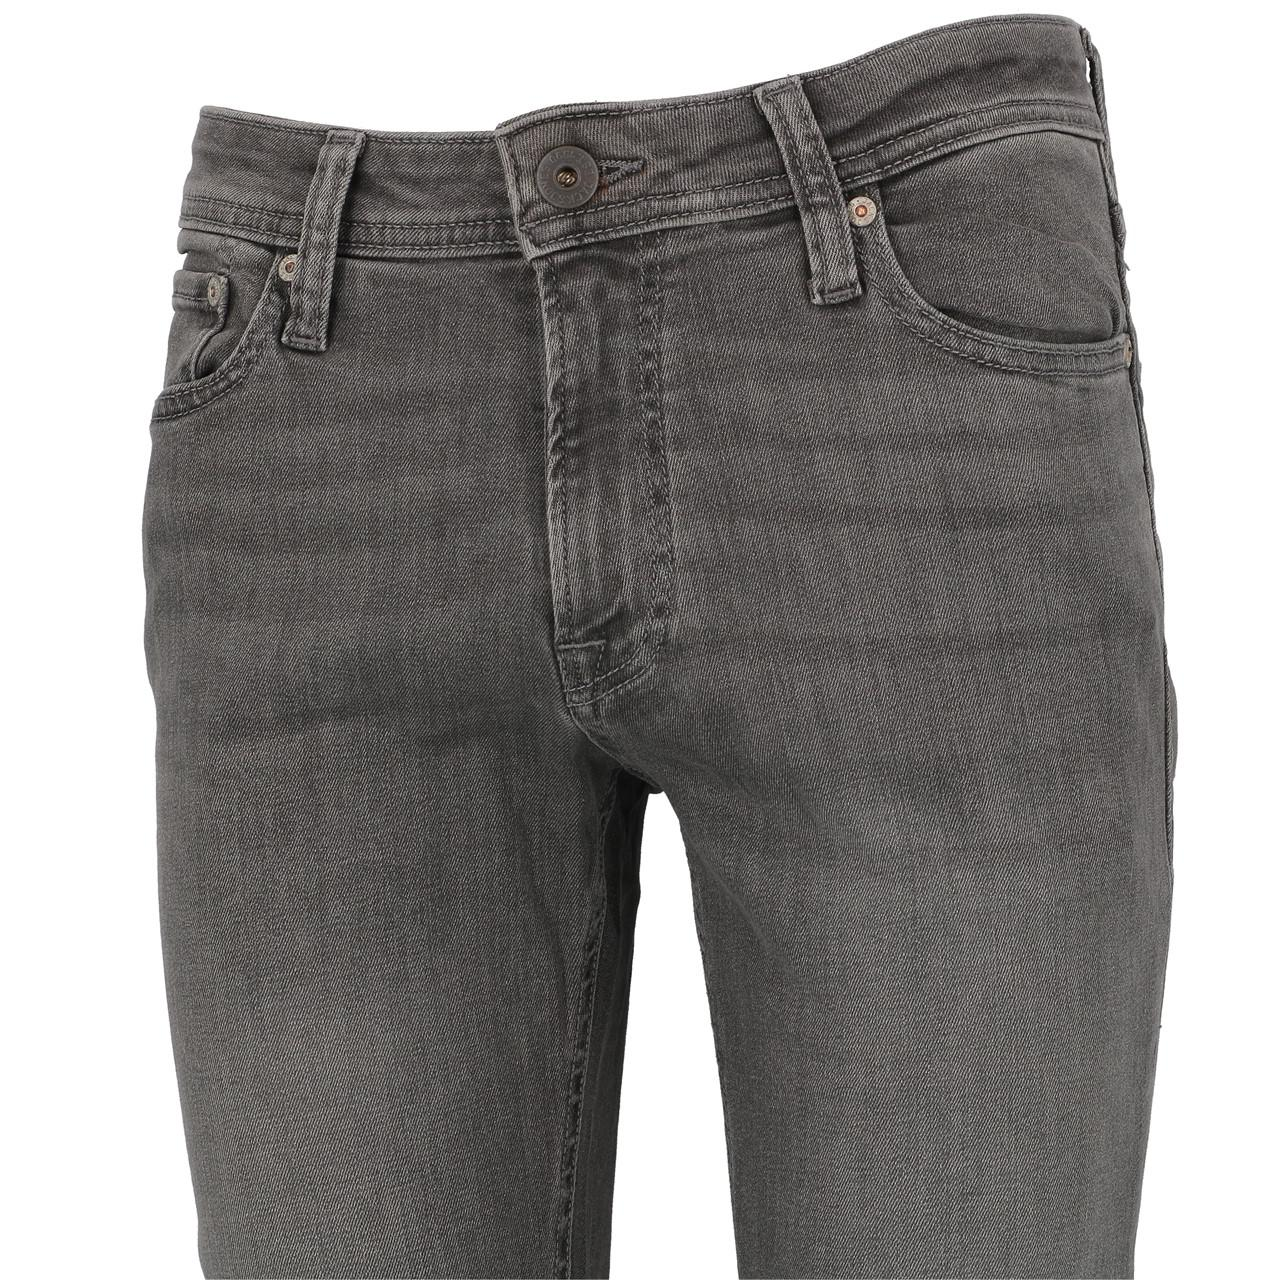 Jeans-Pants-Jack-and-jones-Liam-32-Grey-Denim-Jeans-Grey-19911-New thumbnail 4